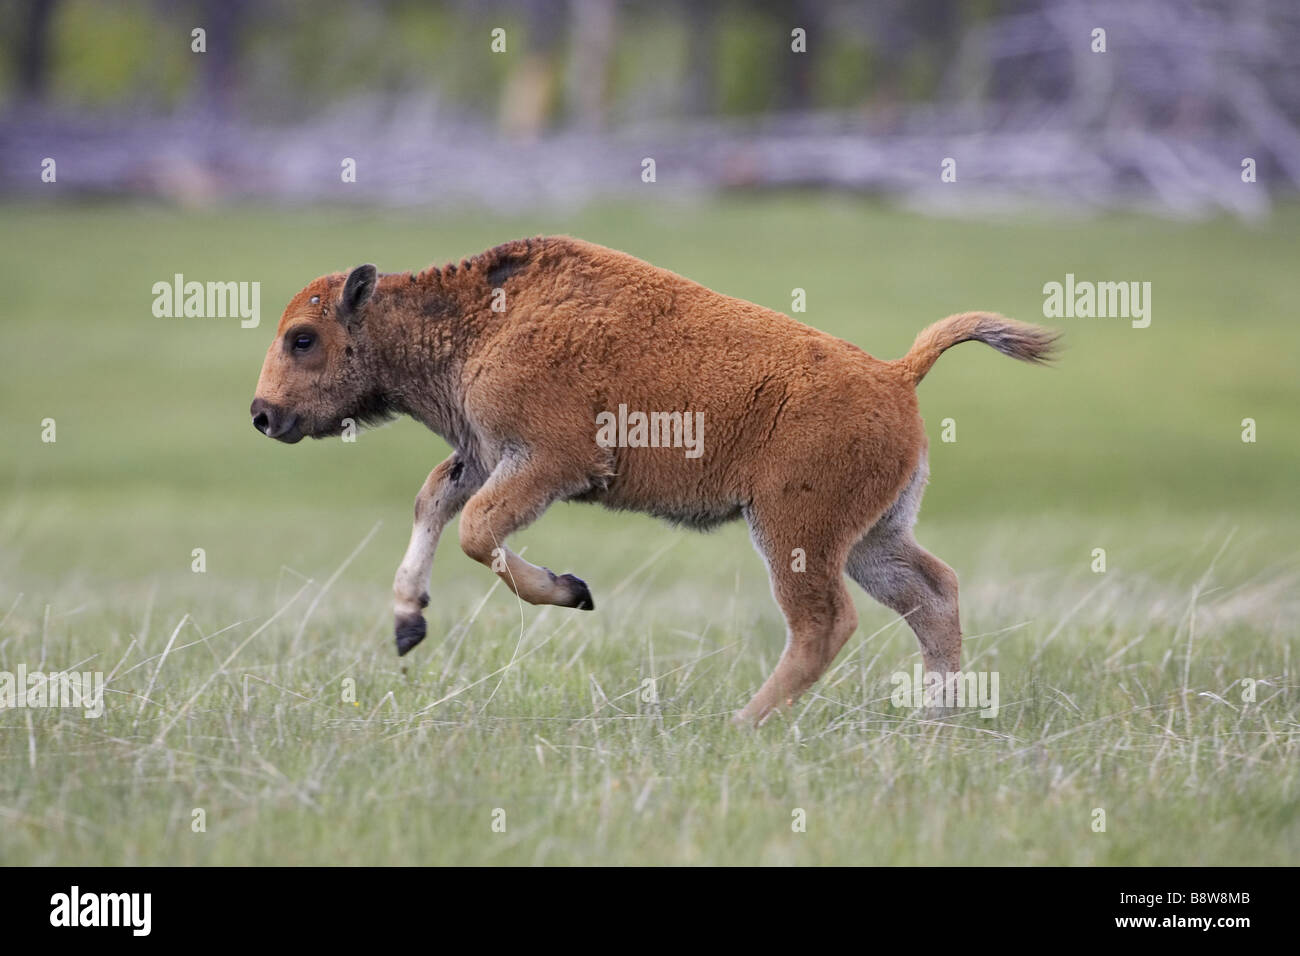 Bison (Bison bison), young calf running - Stock Image